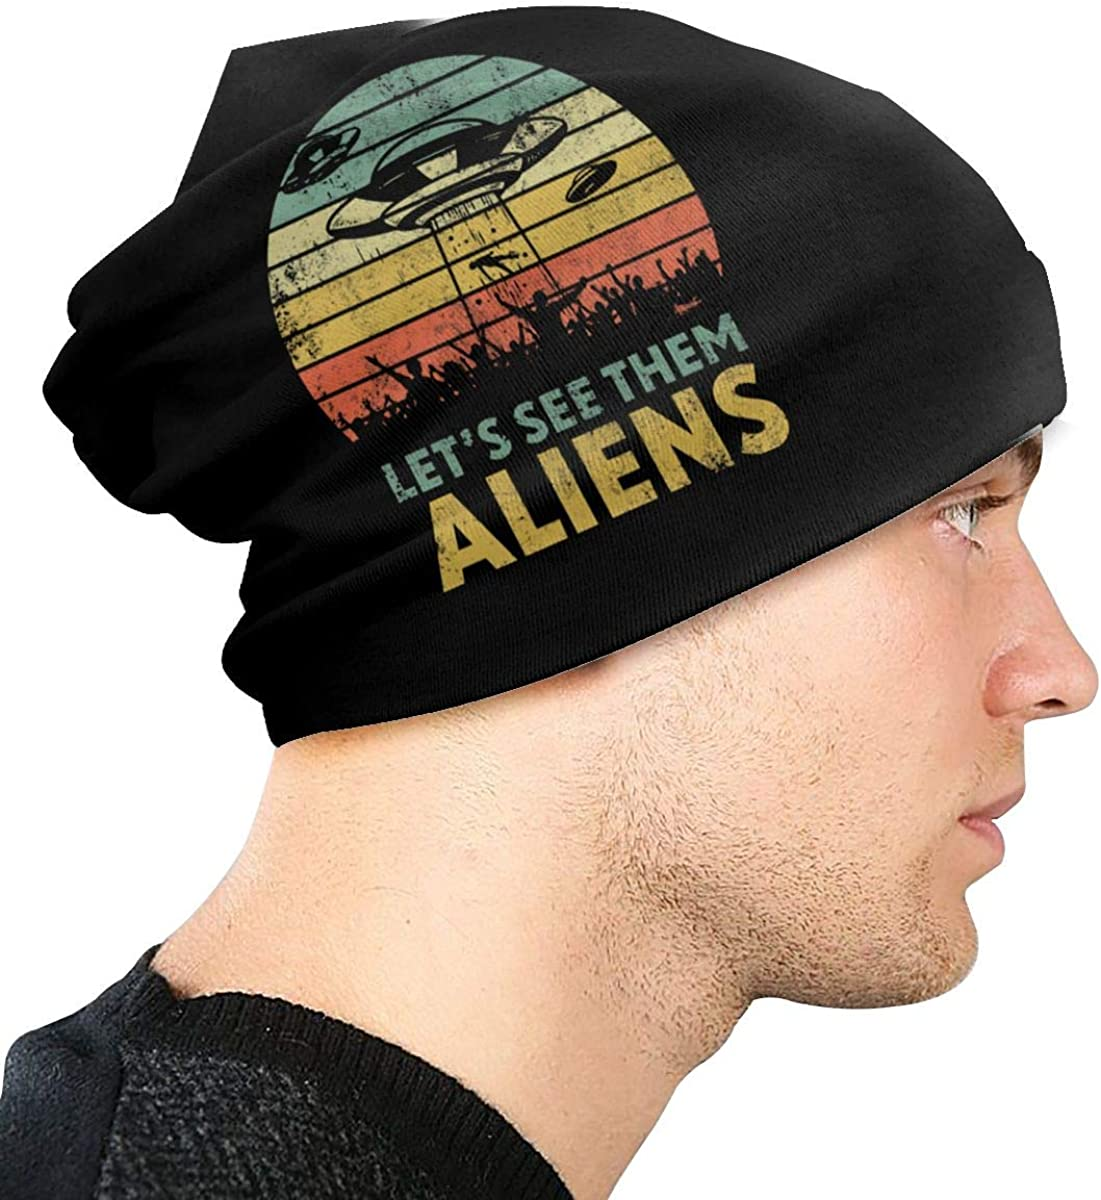 Area 51-Lets See Them Aliens Unisex Warm Hat Knit Hat Skull Cap Beanies Cap